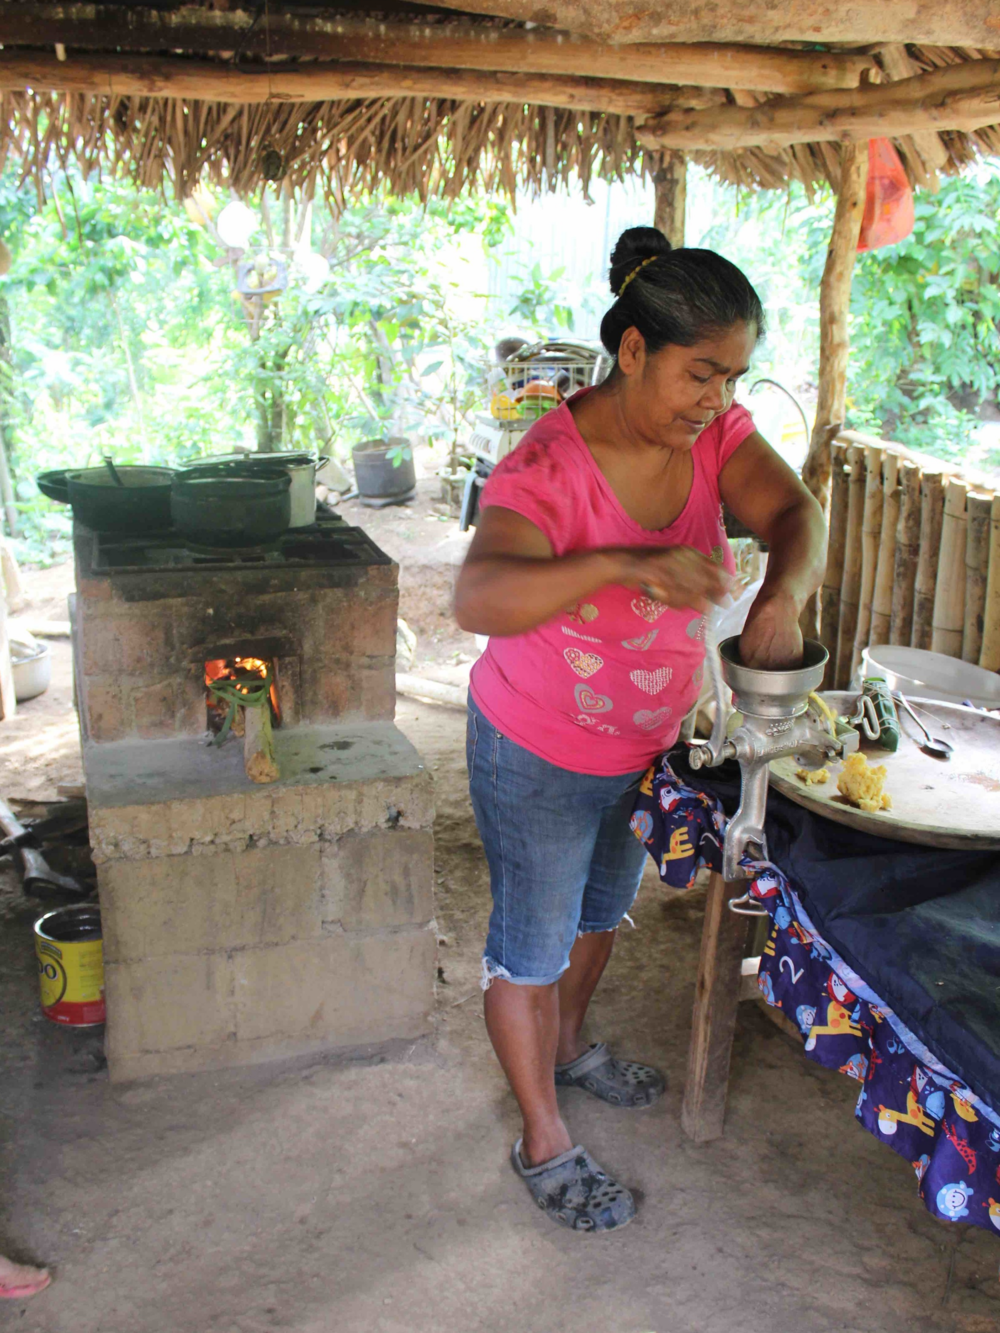 Urita prepping cornmeal for tortillas - photo by Bailey McWilliams